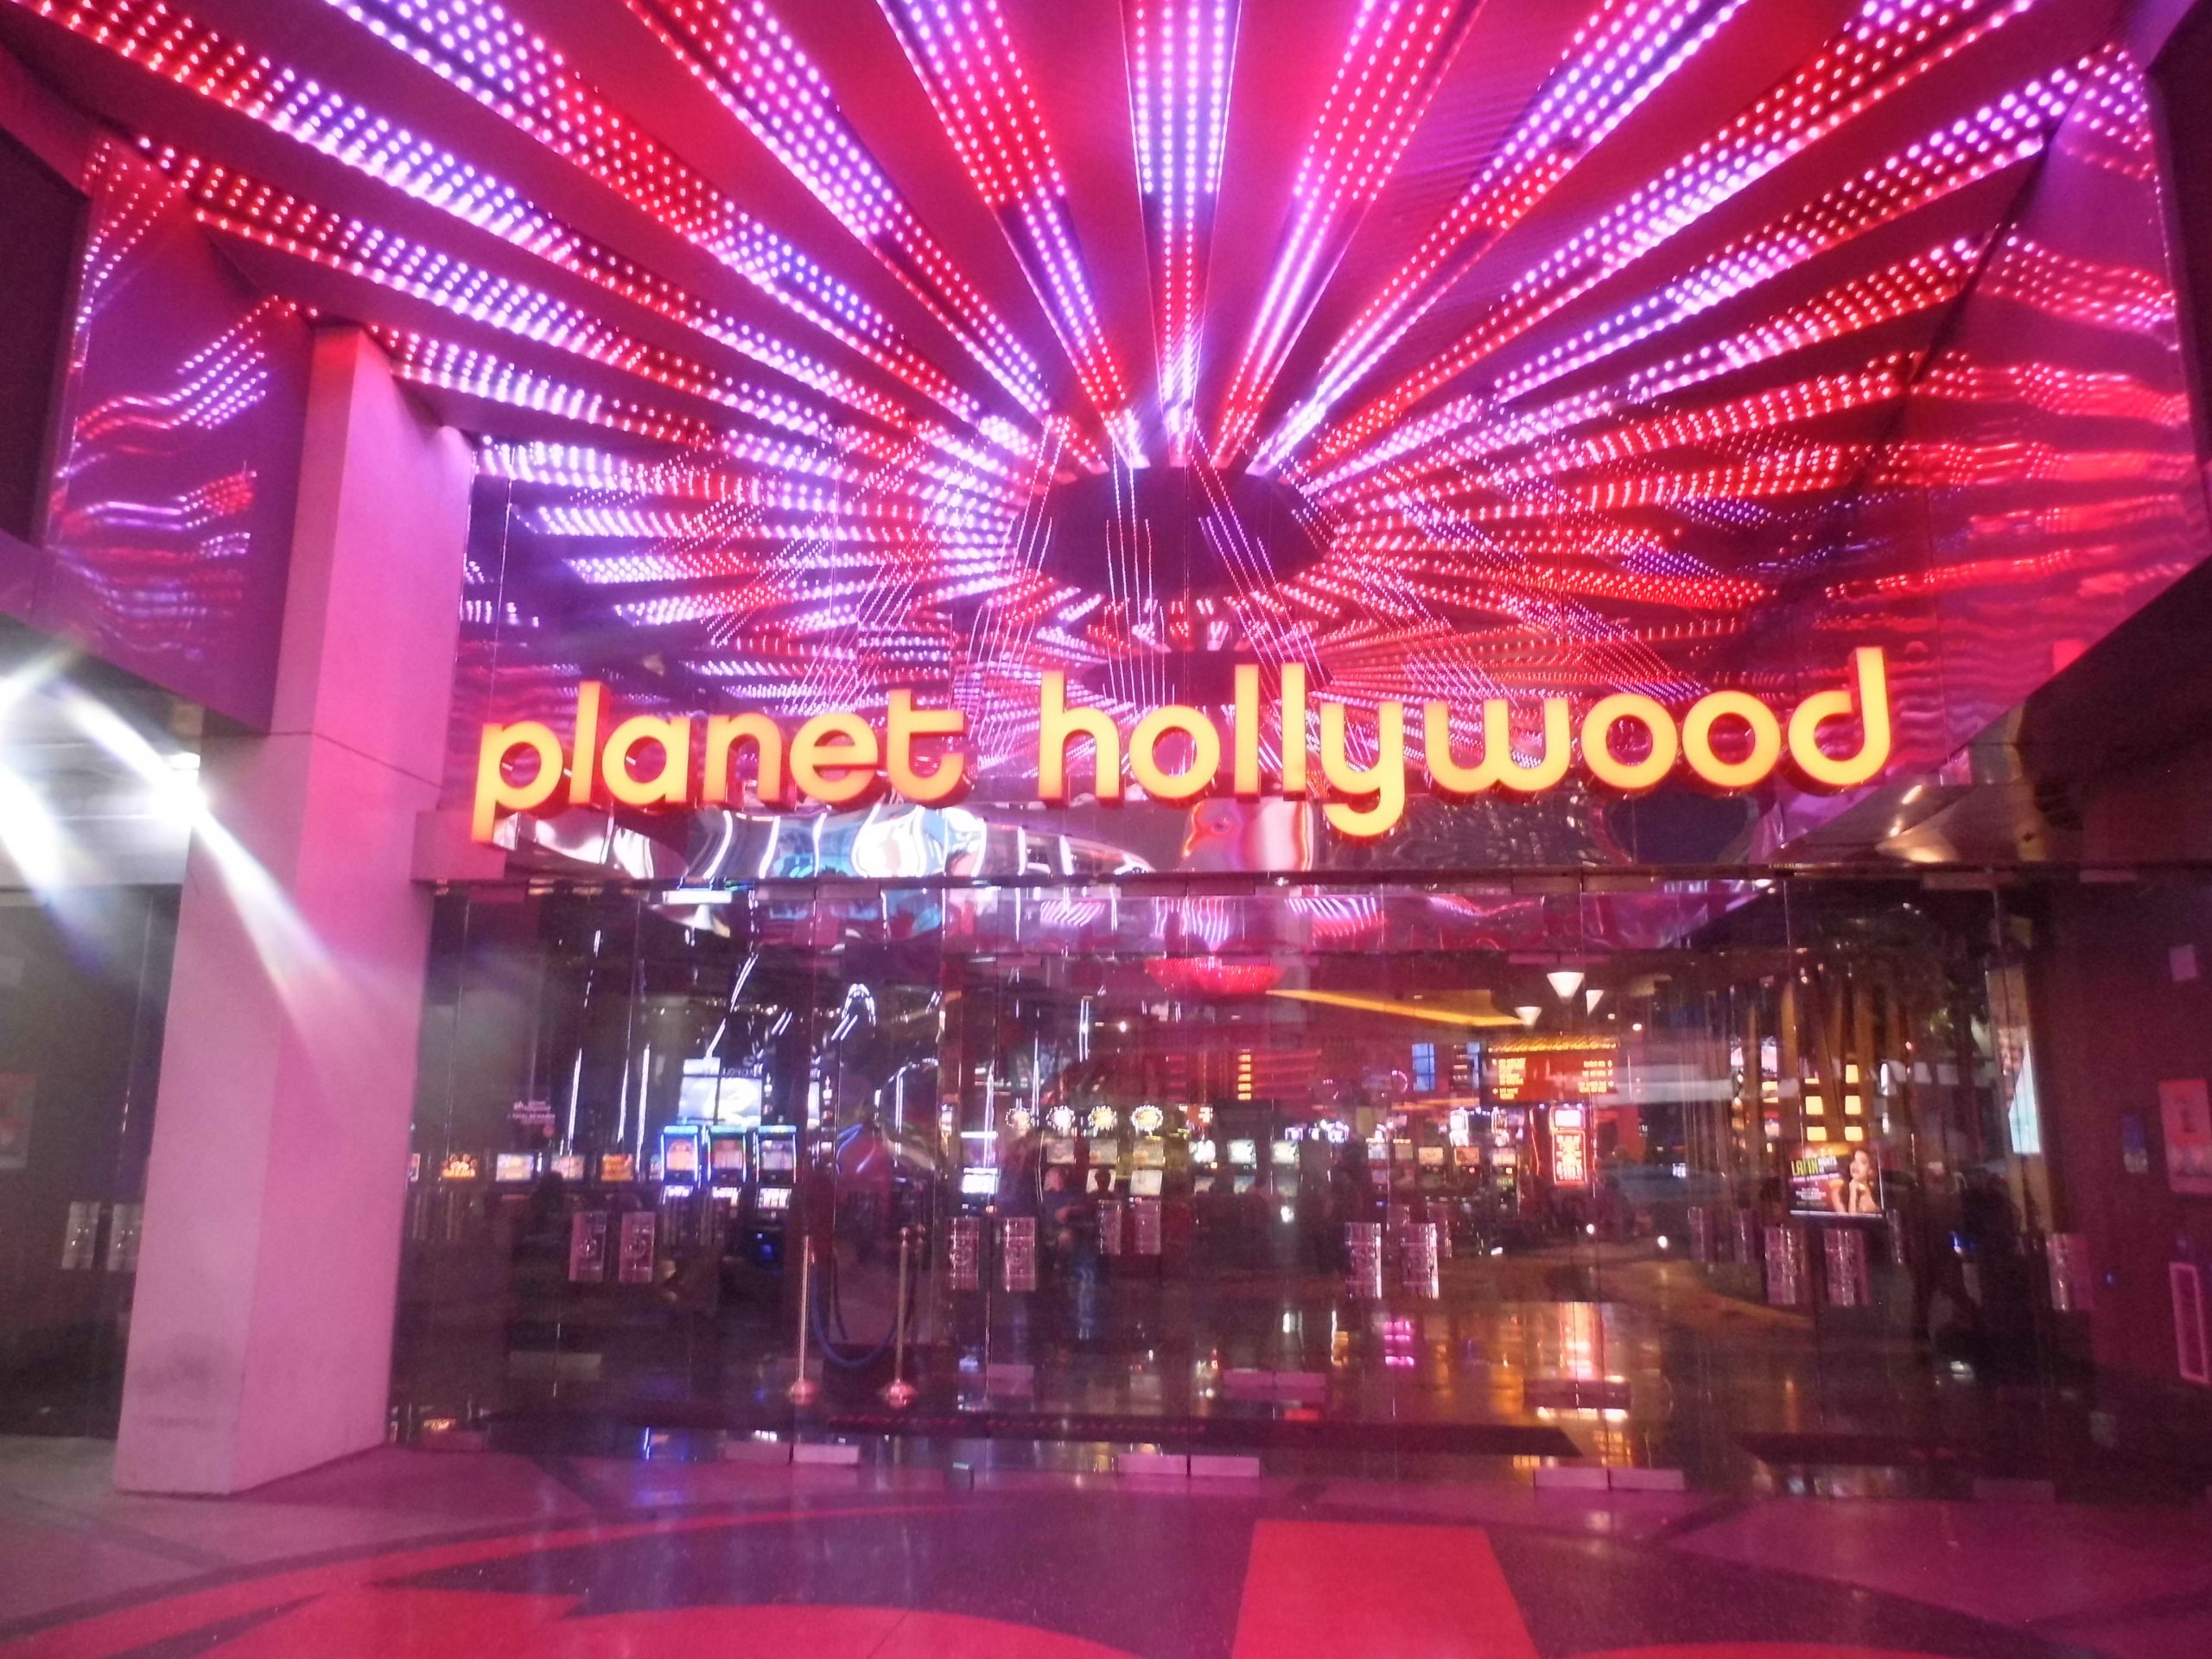 Planet Hollywood Hotel and Casino 2019, Planet Hollywood Hotel and Casino, 2019 Planet Hollywood Hotel and Casino, Planet Hollywood and Casino Las Vegas